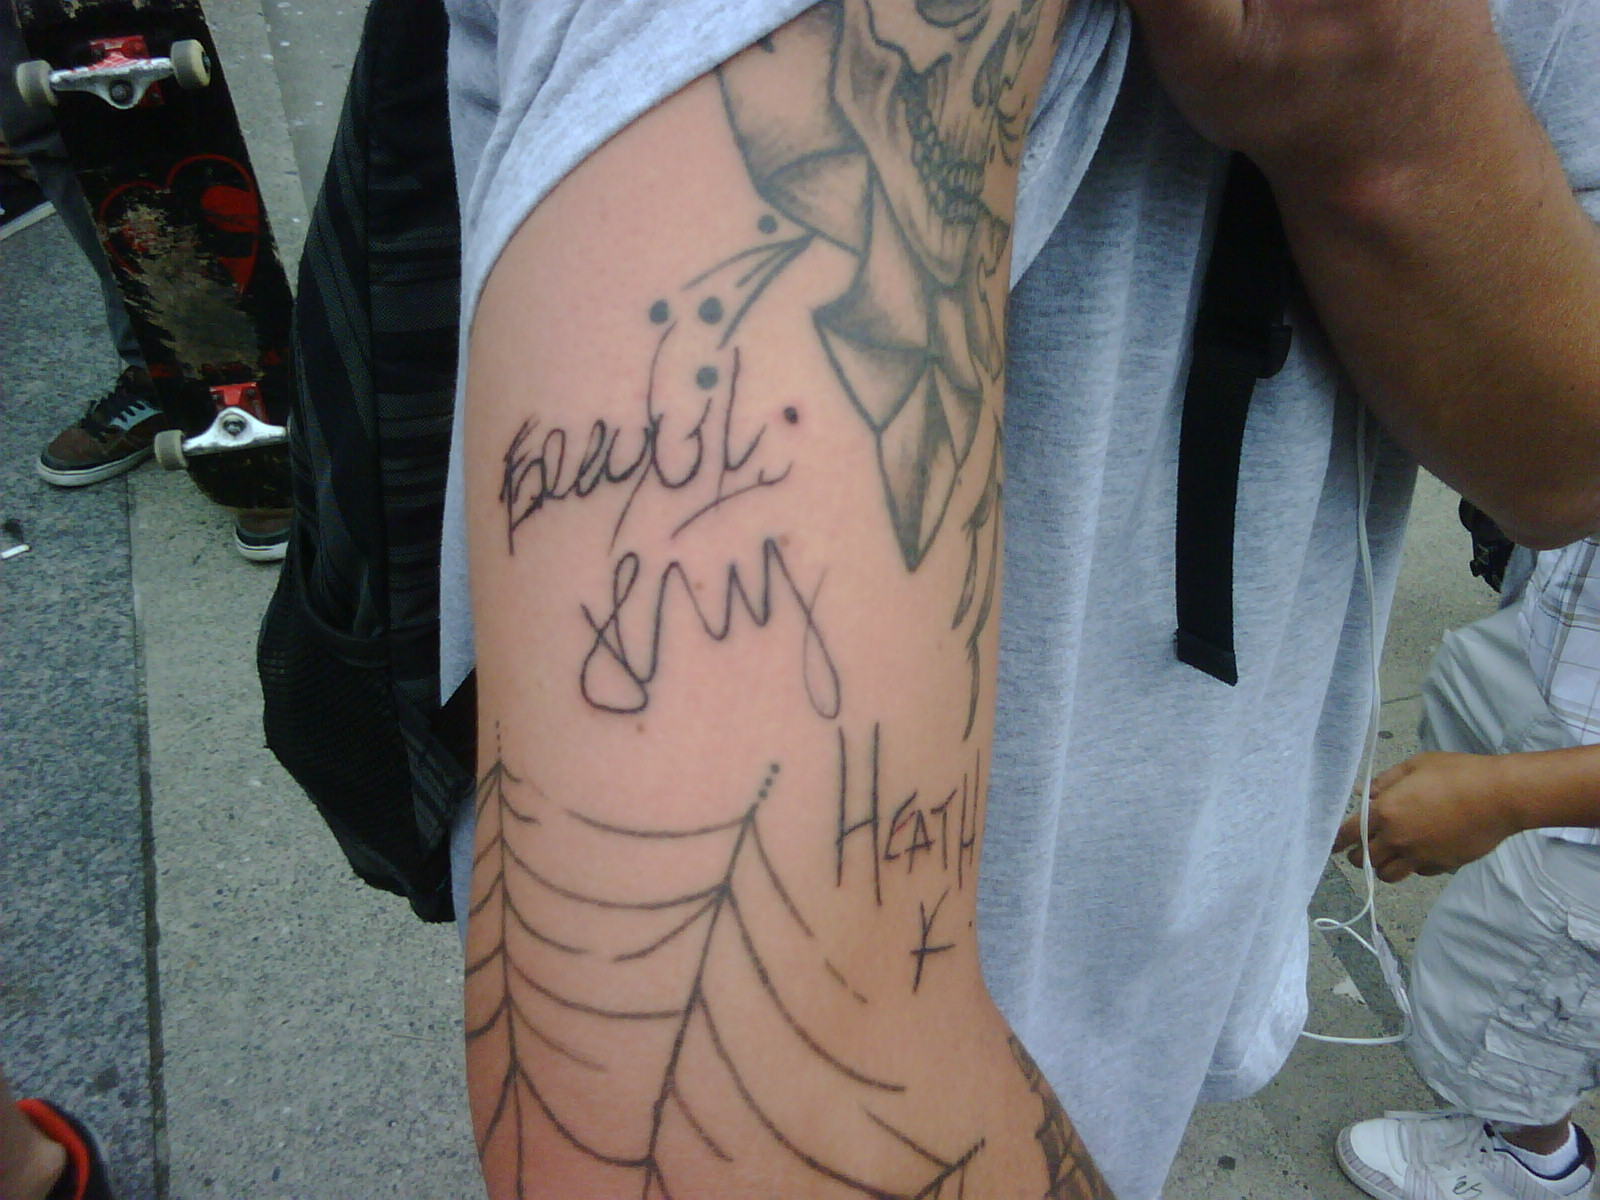 this genius got our signatures TATTOOED on him. dude.